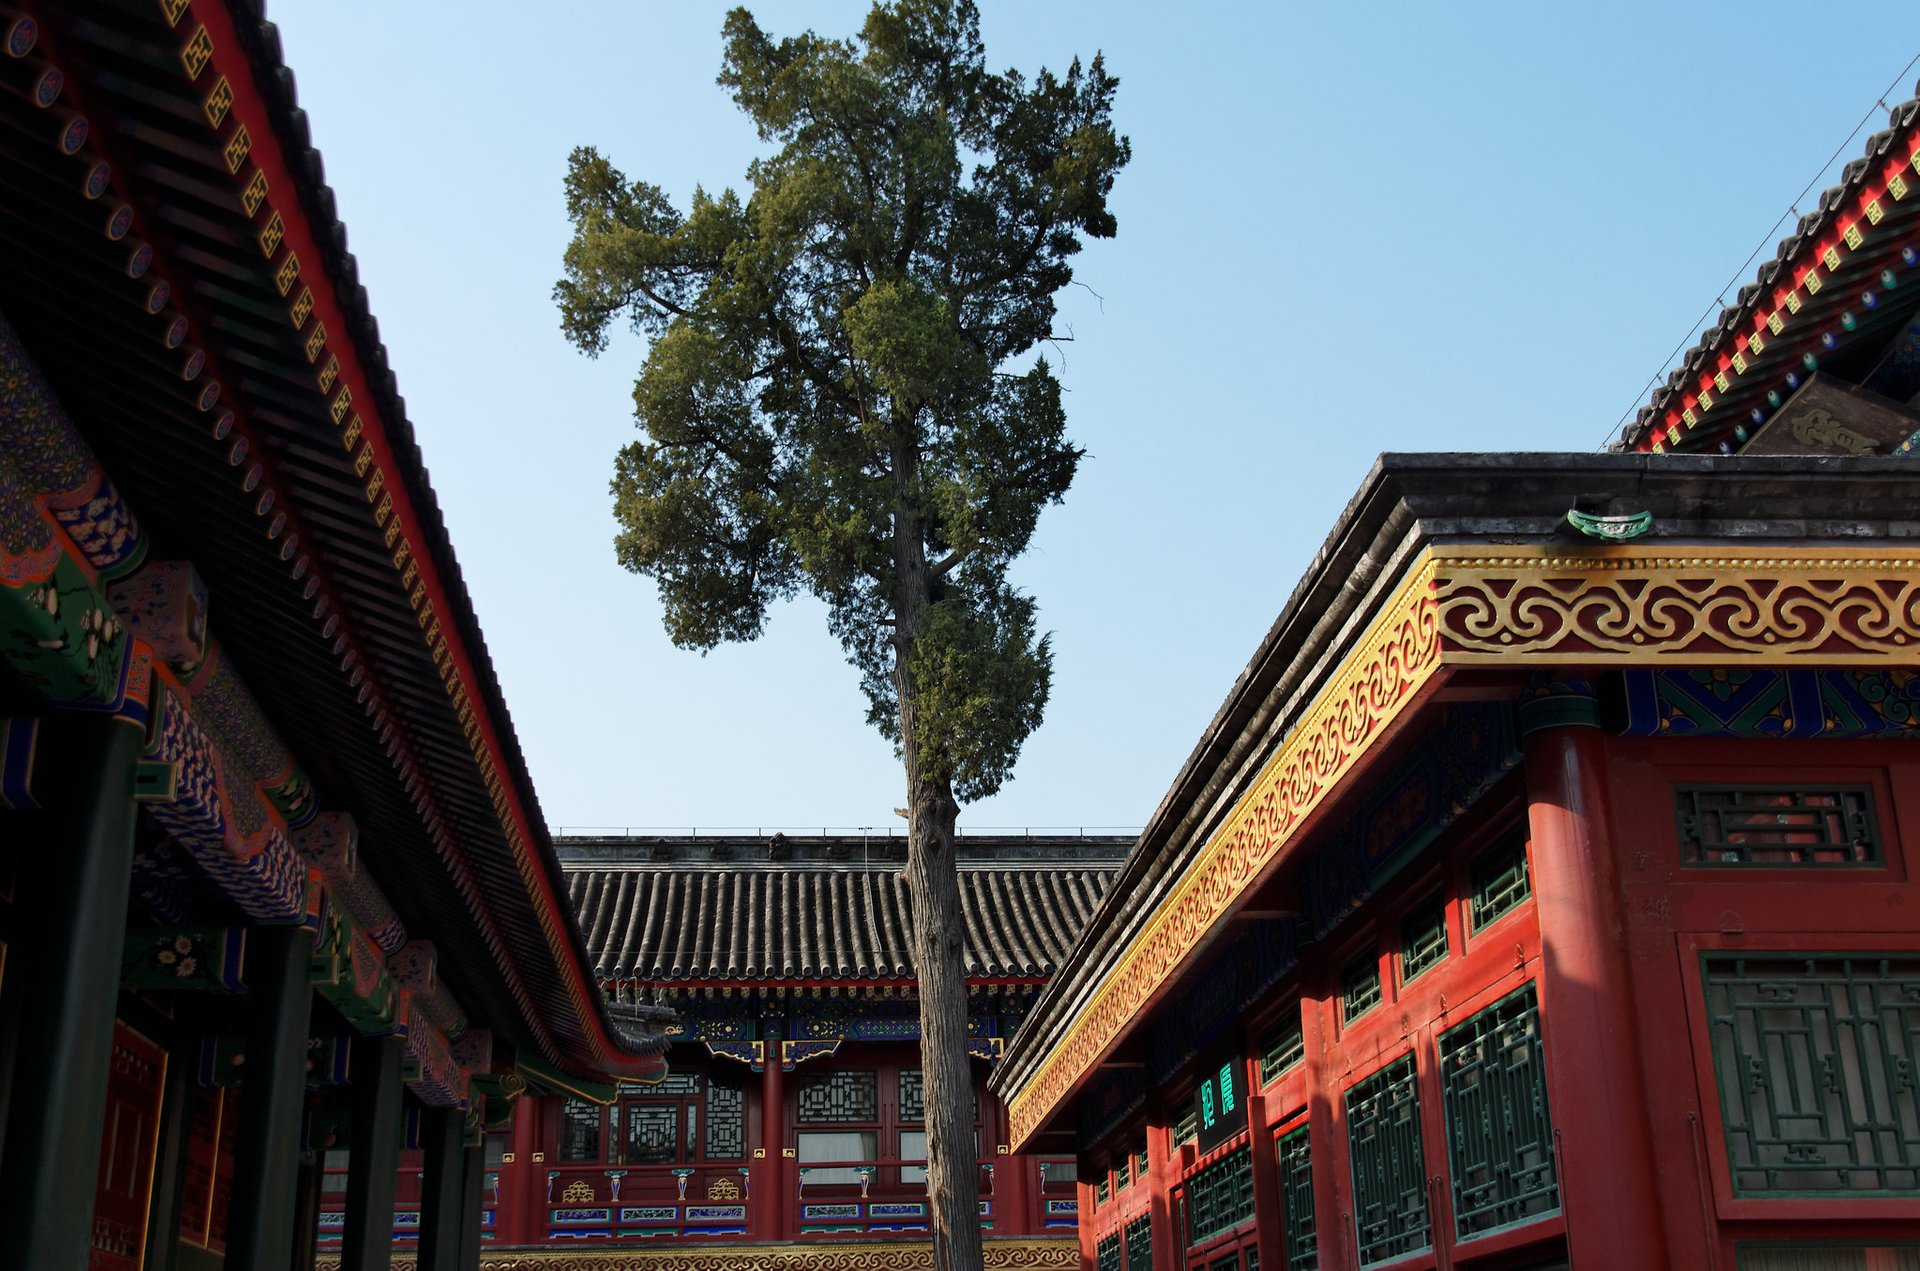 Prince Gong's Mansion in Beijing 2020 - Best Time